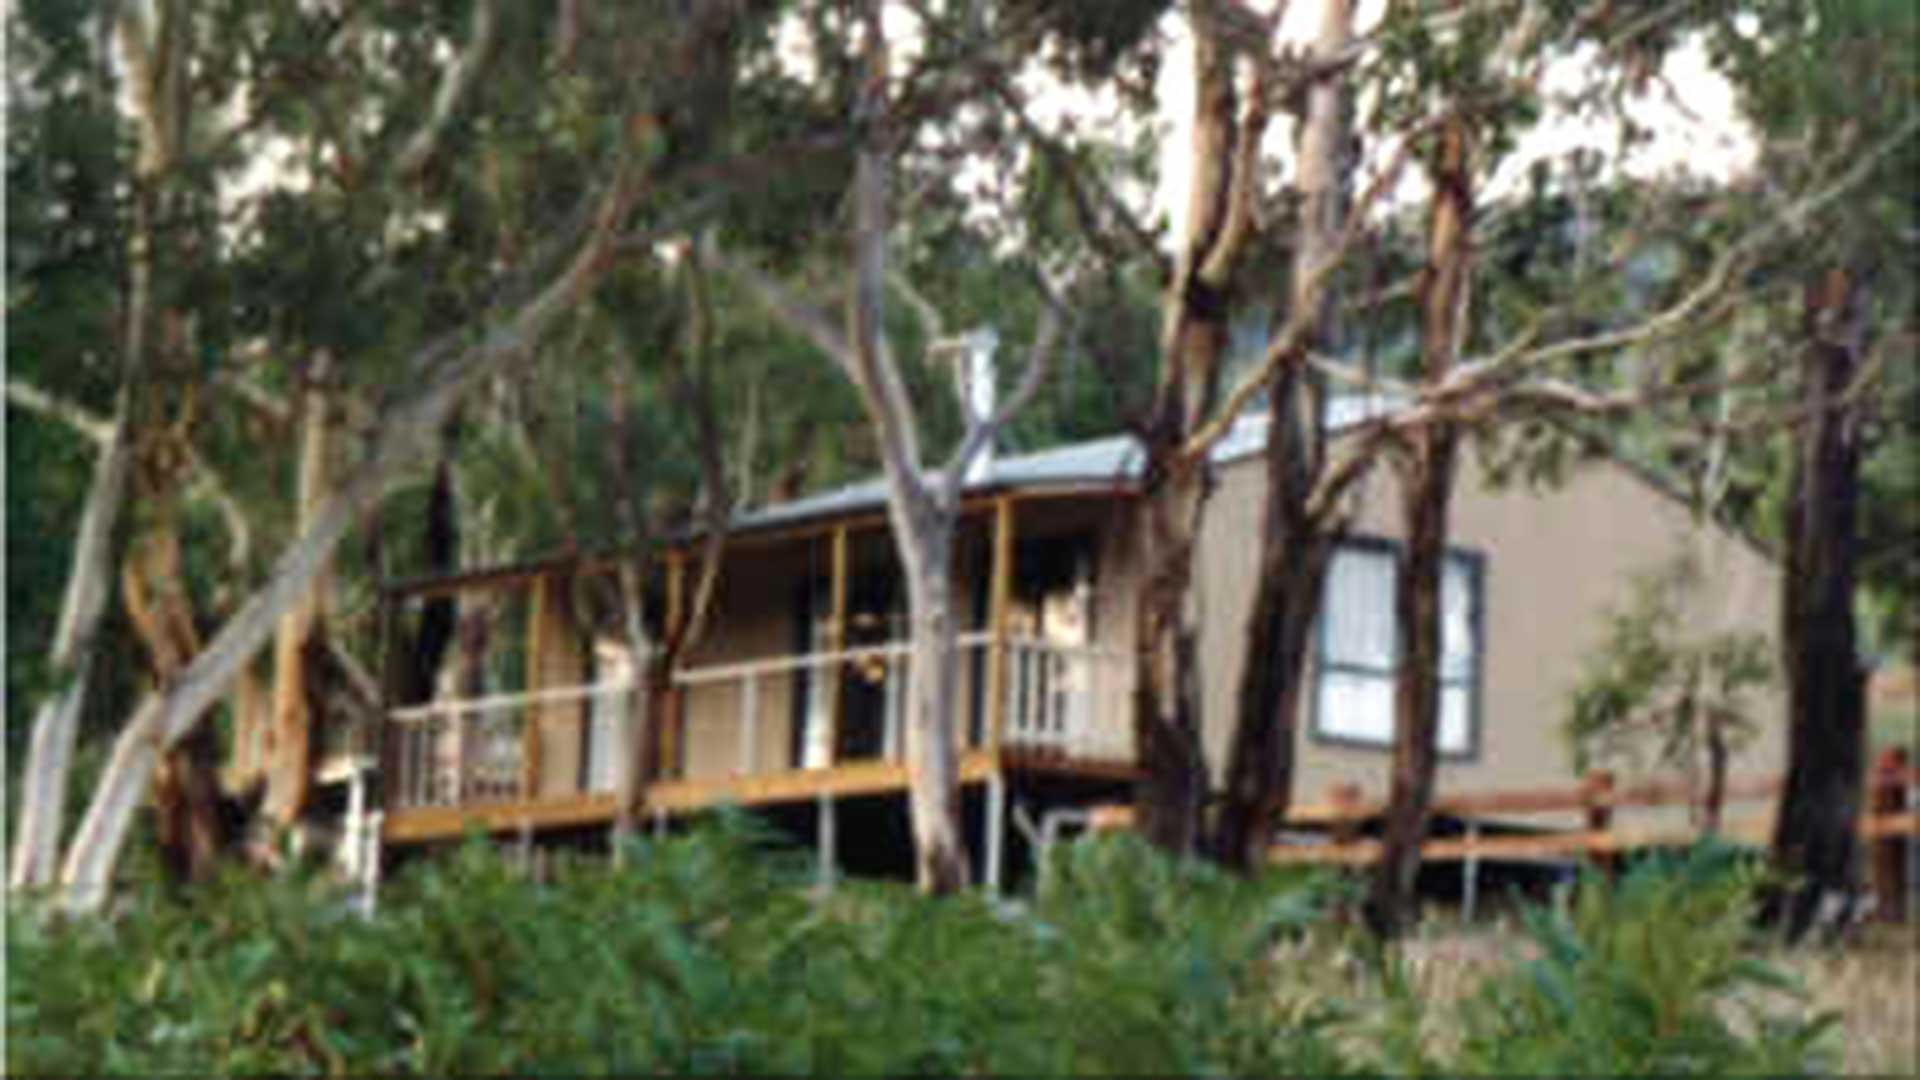 Accommodation - Glenroy Cottages & Camping | Visit Oberon